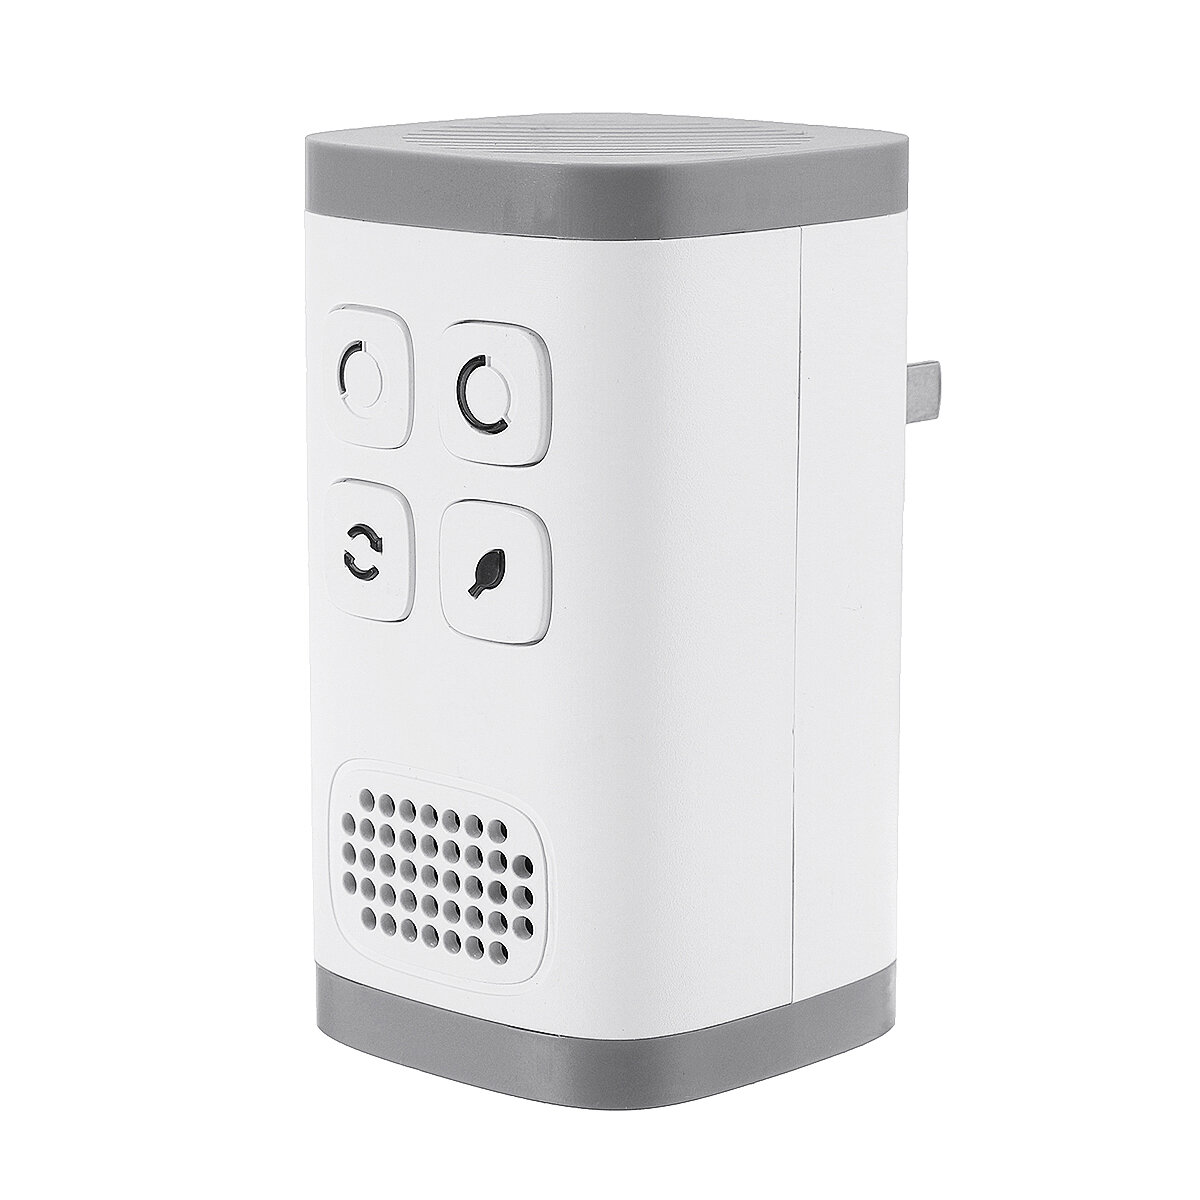 AC110-240V Plug-in Air Purifier Ozone Generator Ionizer Clean Industrial Grade Odor Remover Air Purifier Negative Ion Generator for Allergies Smoke Mold Dust Odor Pets